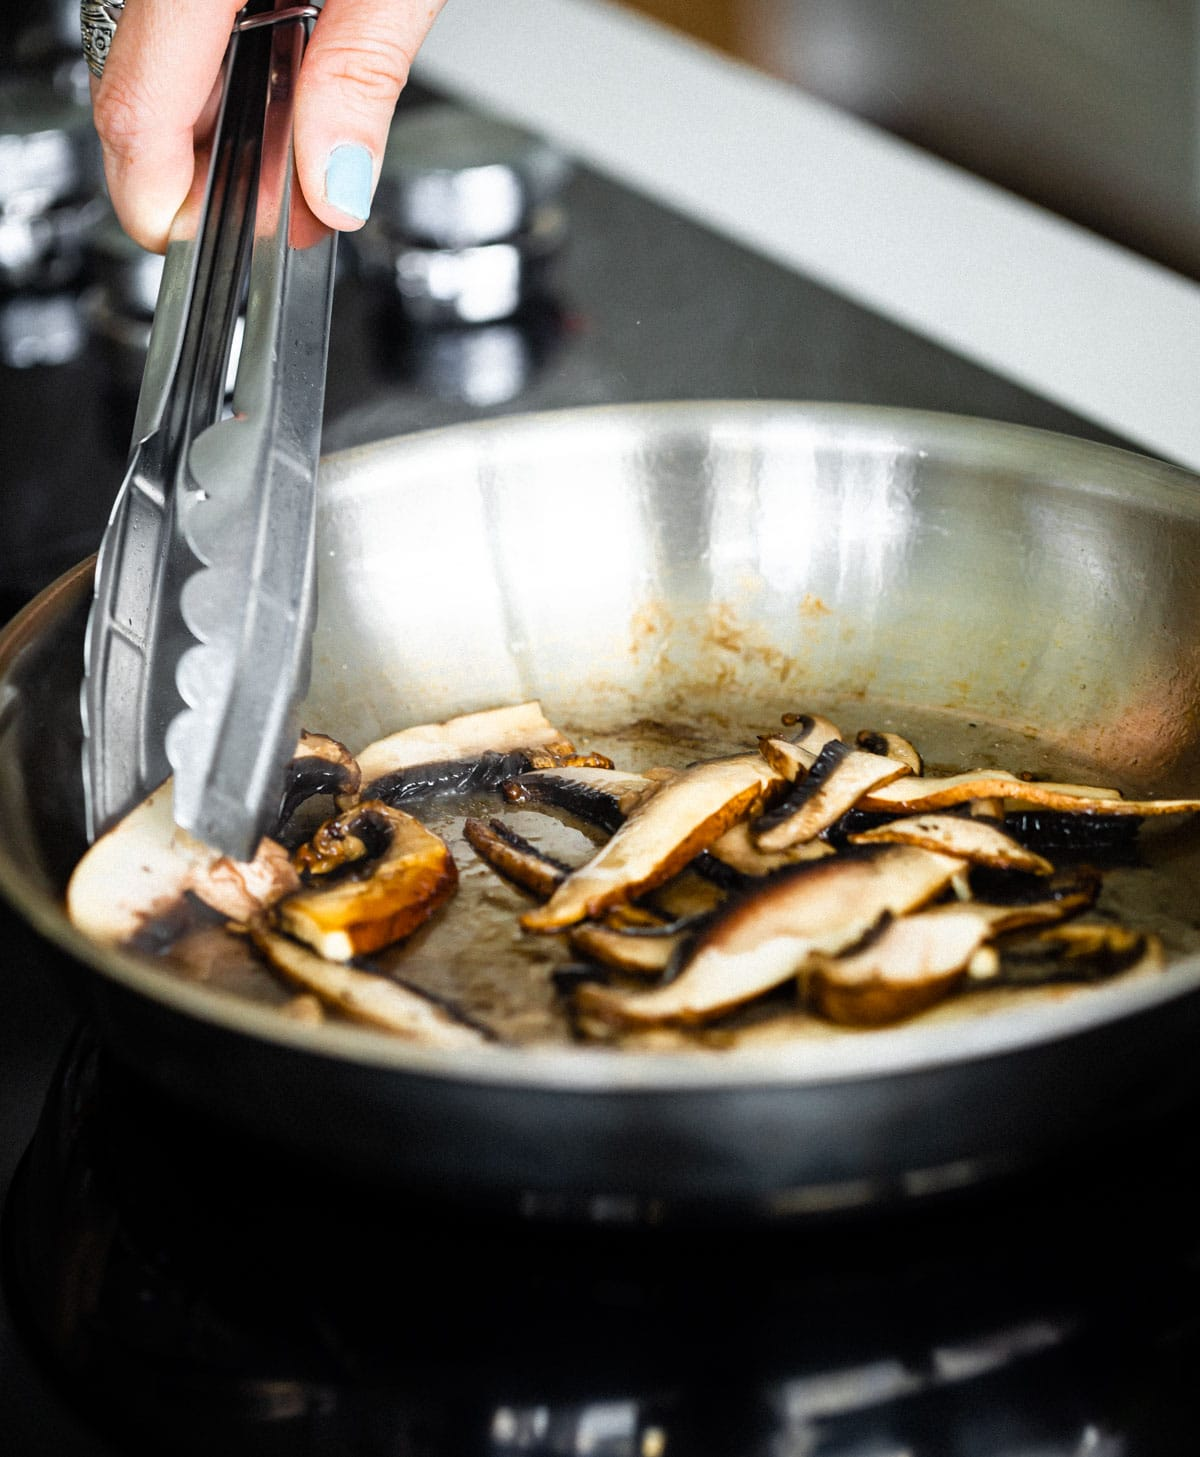 mushrooms in pan with oil. Woman holding tons to flip the sliced mushrooms